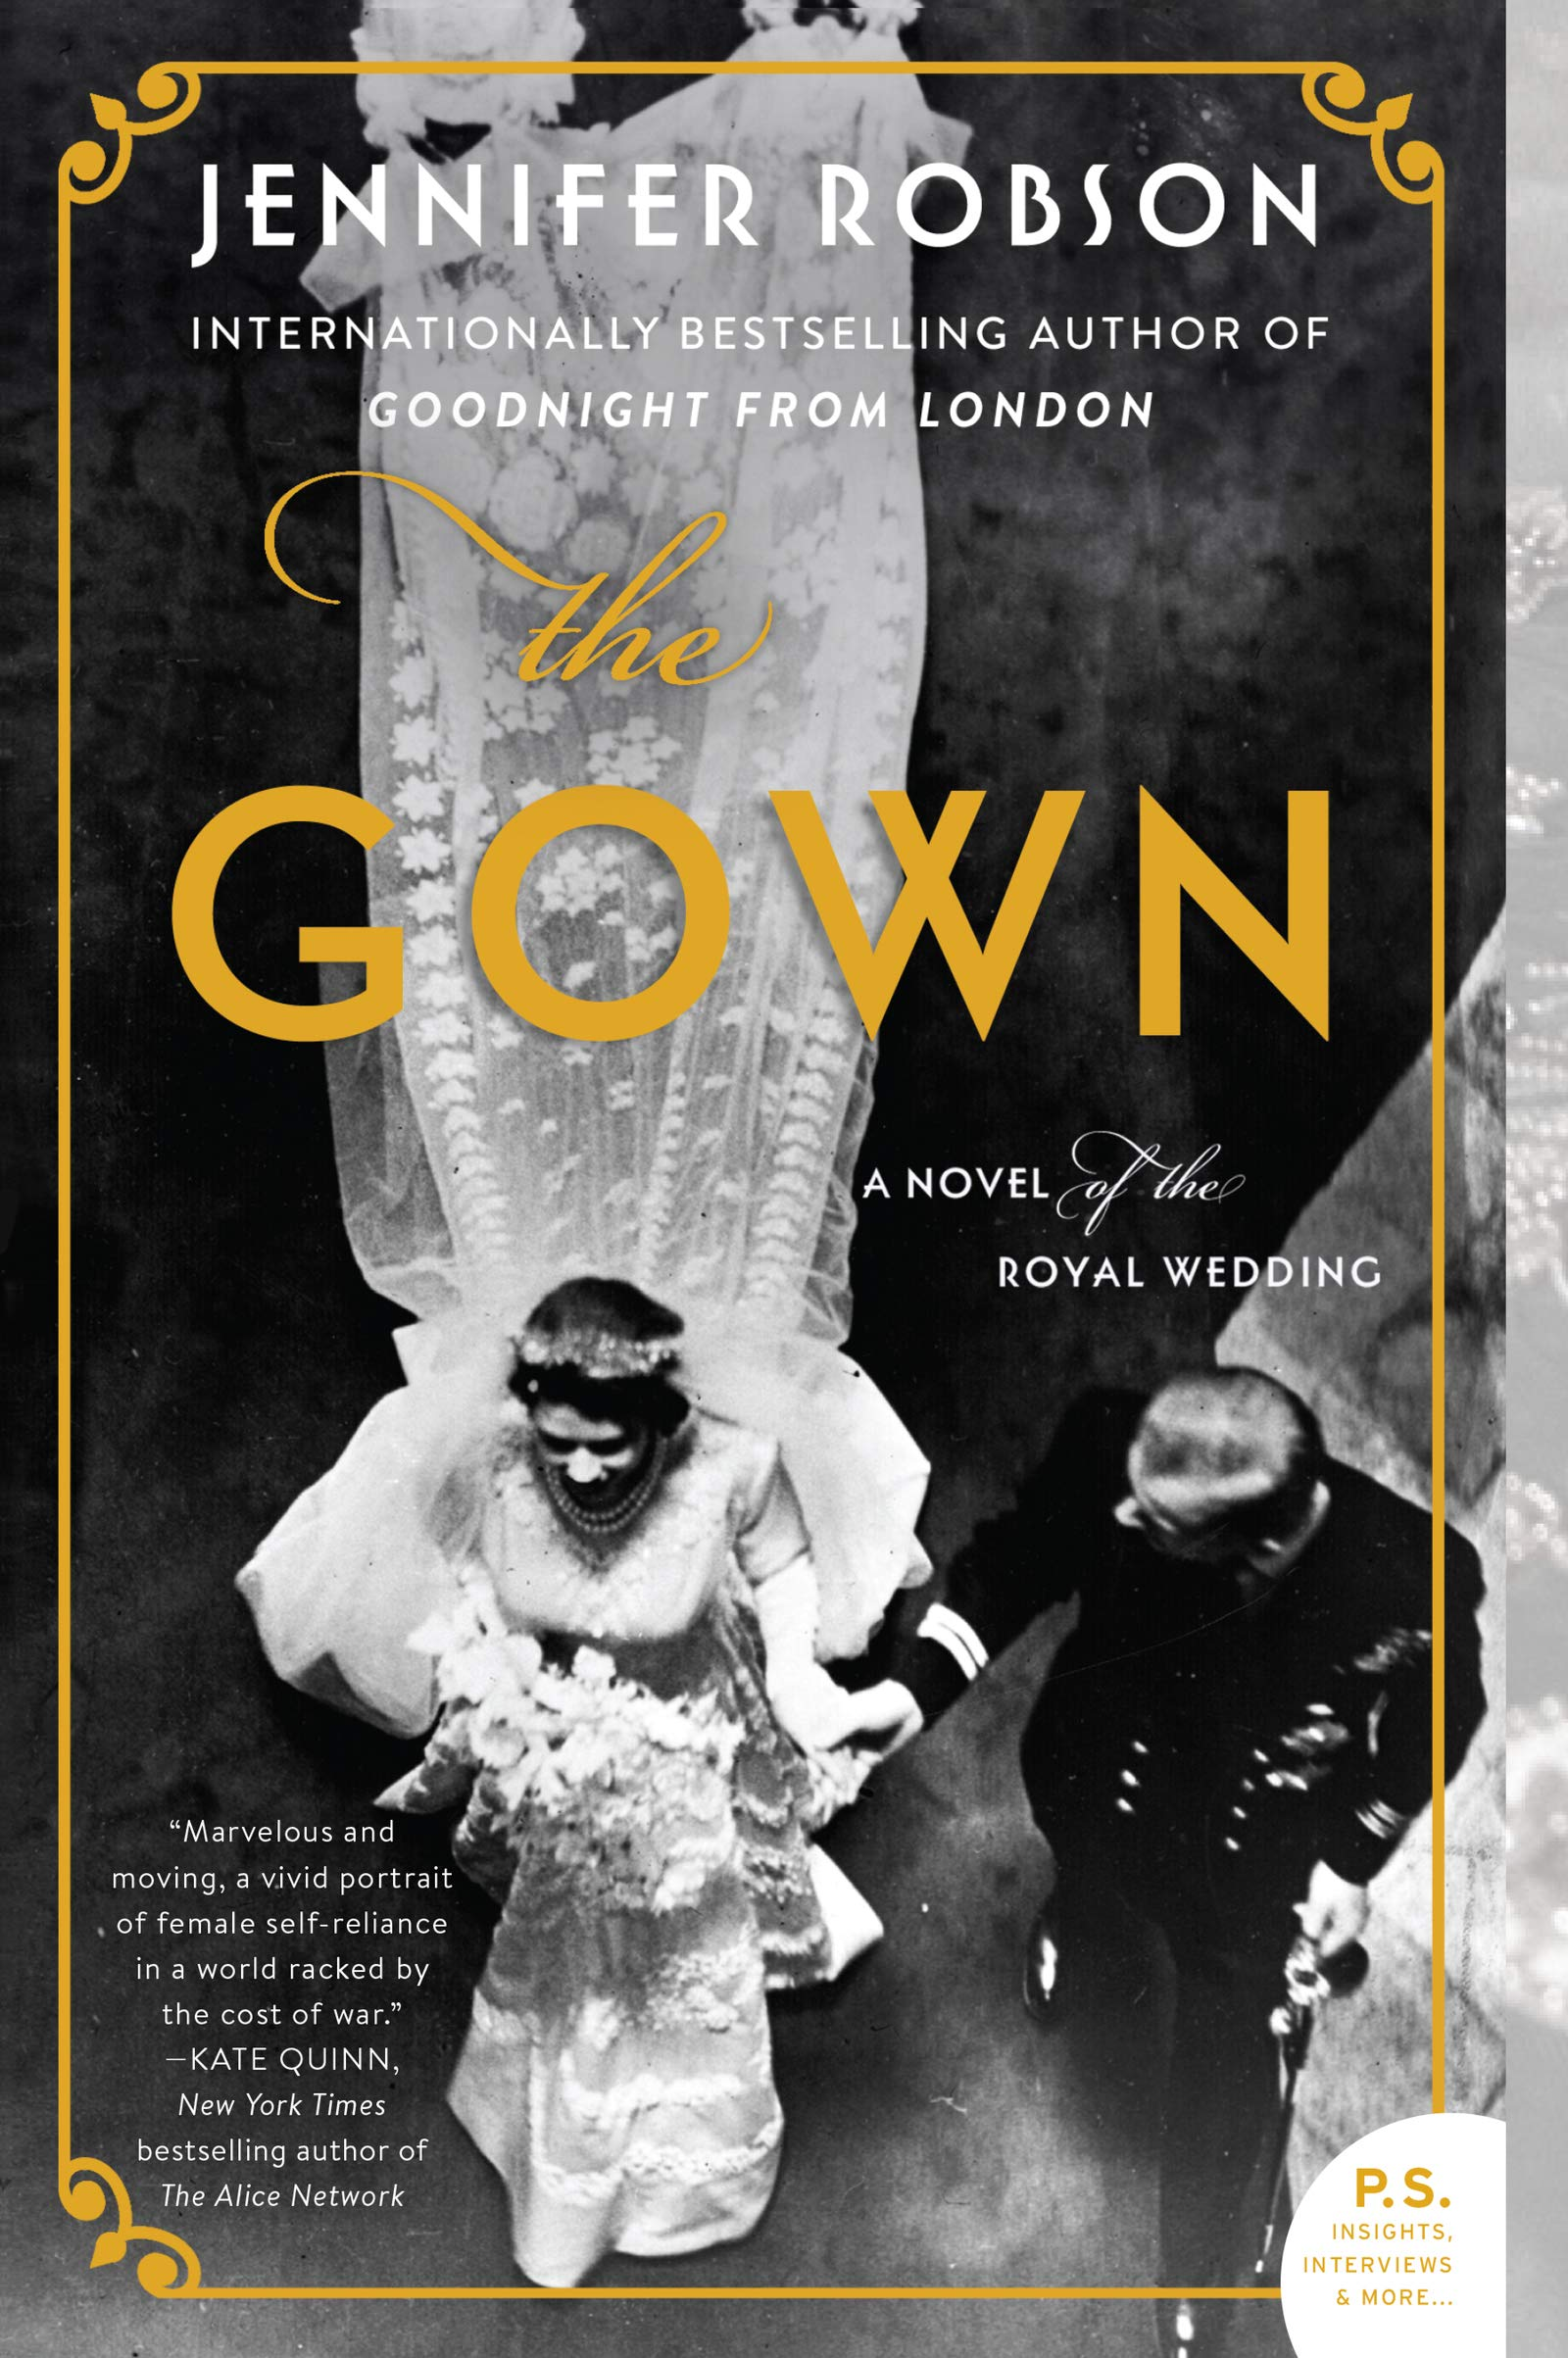 The Gown: A Novel of the Royal Wedding by Jennifer Robson   London, 1947: Besieged by the harshest winter in living memory, burdened by onerous shortages and rationing, the people of postwar Britain are enduring lives of quiet desperation despite their nation's recent victory. Among them are Ann Hughes and Miriam Dassin, embroiderers at the famed Mayfair fashion house of Norman Hartnell. Together they forge an unlikely friendship, but their nascent hopes for a brighter future are tested when they are chosen for a once-in-a-lifetime honor: taking part in the creation of Princess Elizabeth's wedding gown.  Toronto, 2016: More than half a century later, Heather Mackenzie seeks to unravel the mystery of a set of embroidered flowers, a legacy from her late grandmother. How did her beloved Nan, a woman who never spoke of her old life in Britain, come to possess the priceless embroideries that so closely resemble the motifs on the stunning gown worn by Queen Elizabeth II at her wedding almost seventy years before? And what was her Nan's connection to the celebrated textile artist and holocaust survivor Miriam Dassin?    With The Gown , Jennifer Robson takes us inside the workrooms where one of the most famous wedding gowns in history was created. Balancing behind-the-scenes details with a sweeping portrait of a society left reeling by the calamitous costs of victory, she introduces readers to three unforgettable heroines, their points of view alternating and intersecting throughout its pages, whose lives are woven together by the pain of survival, the bonds of friendship, and the redemptive power of love.